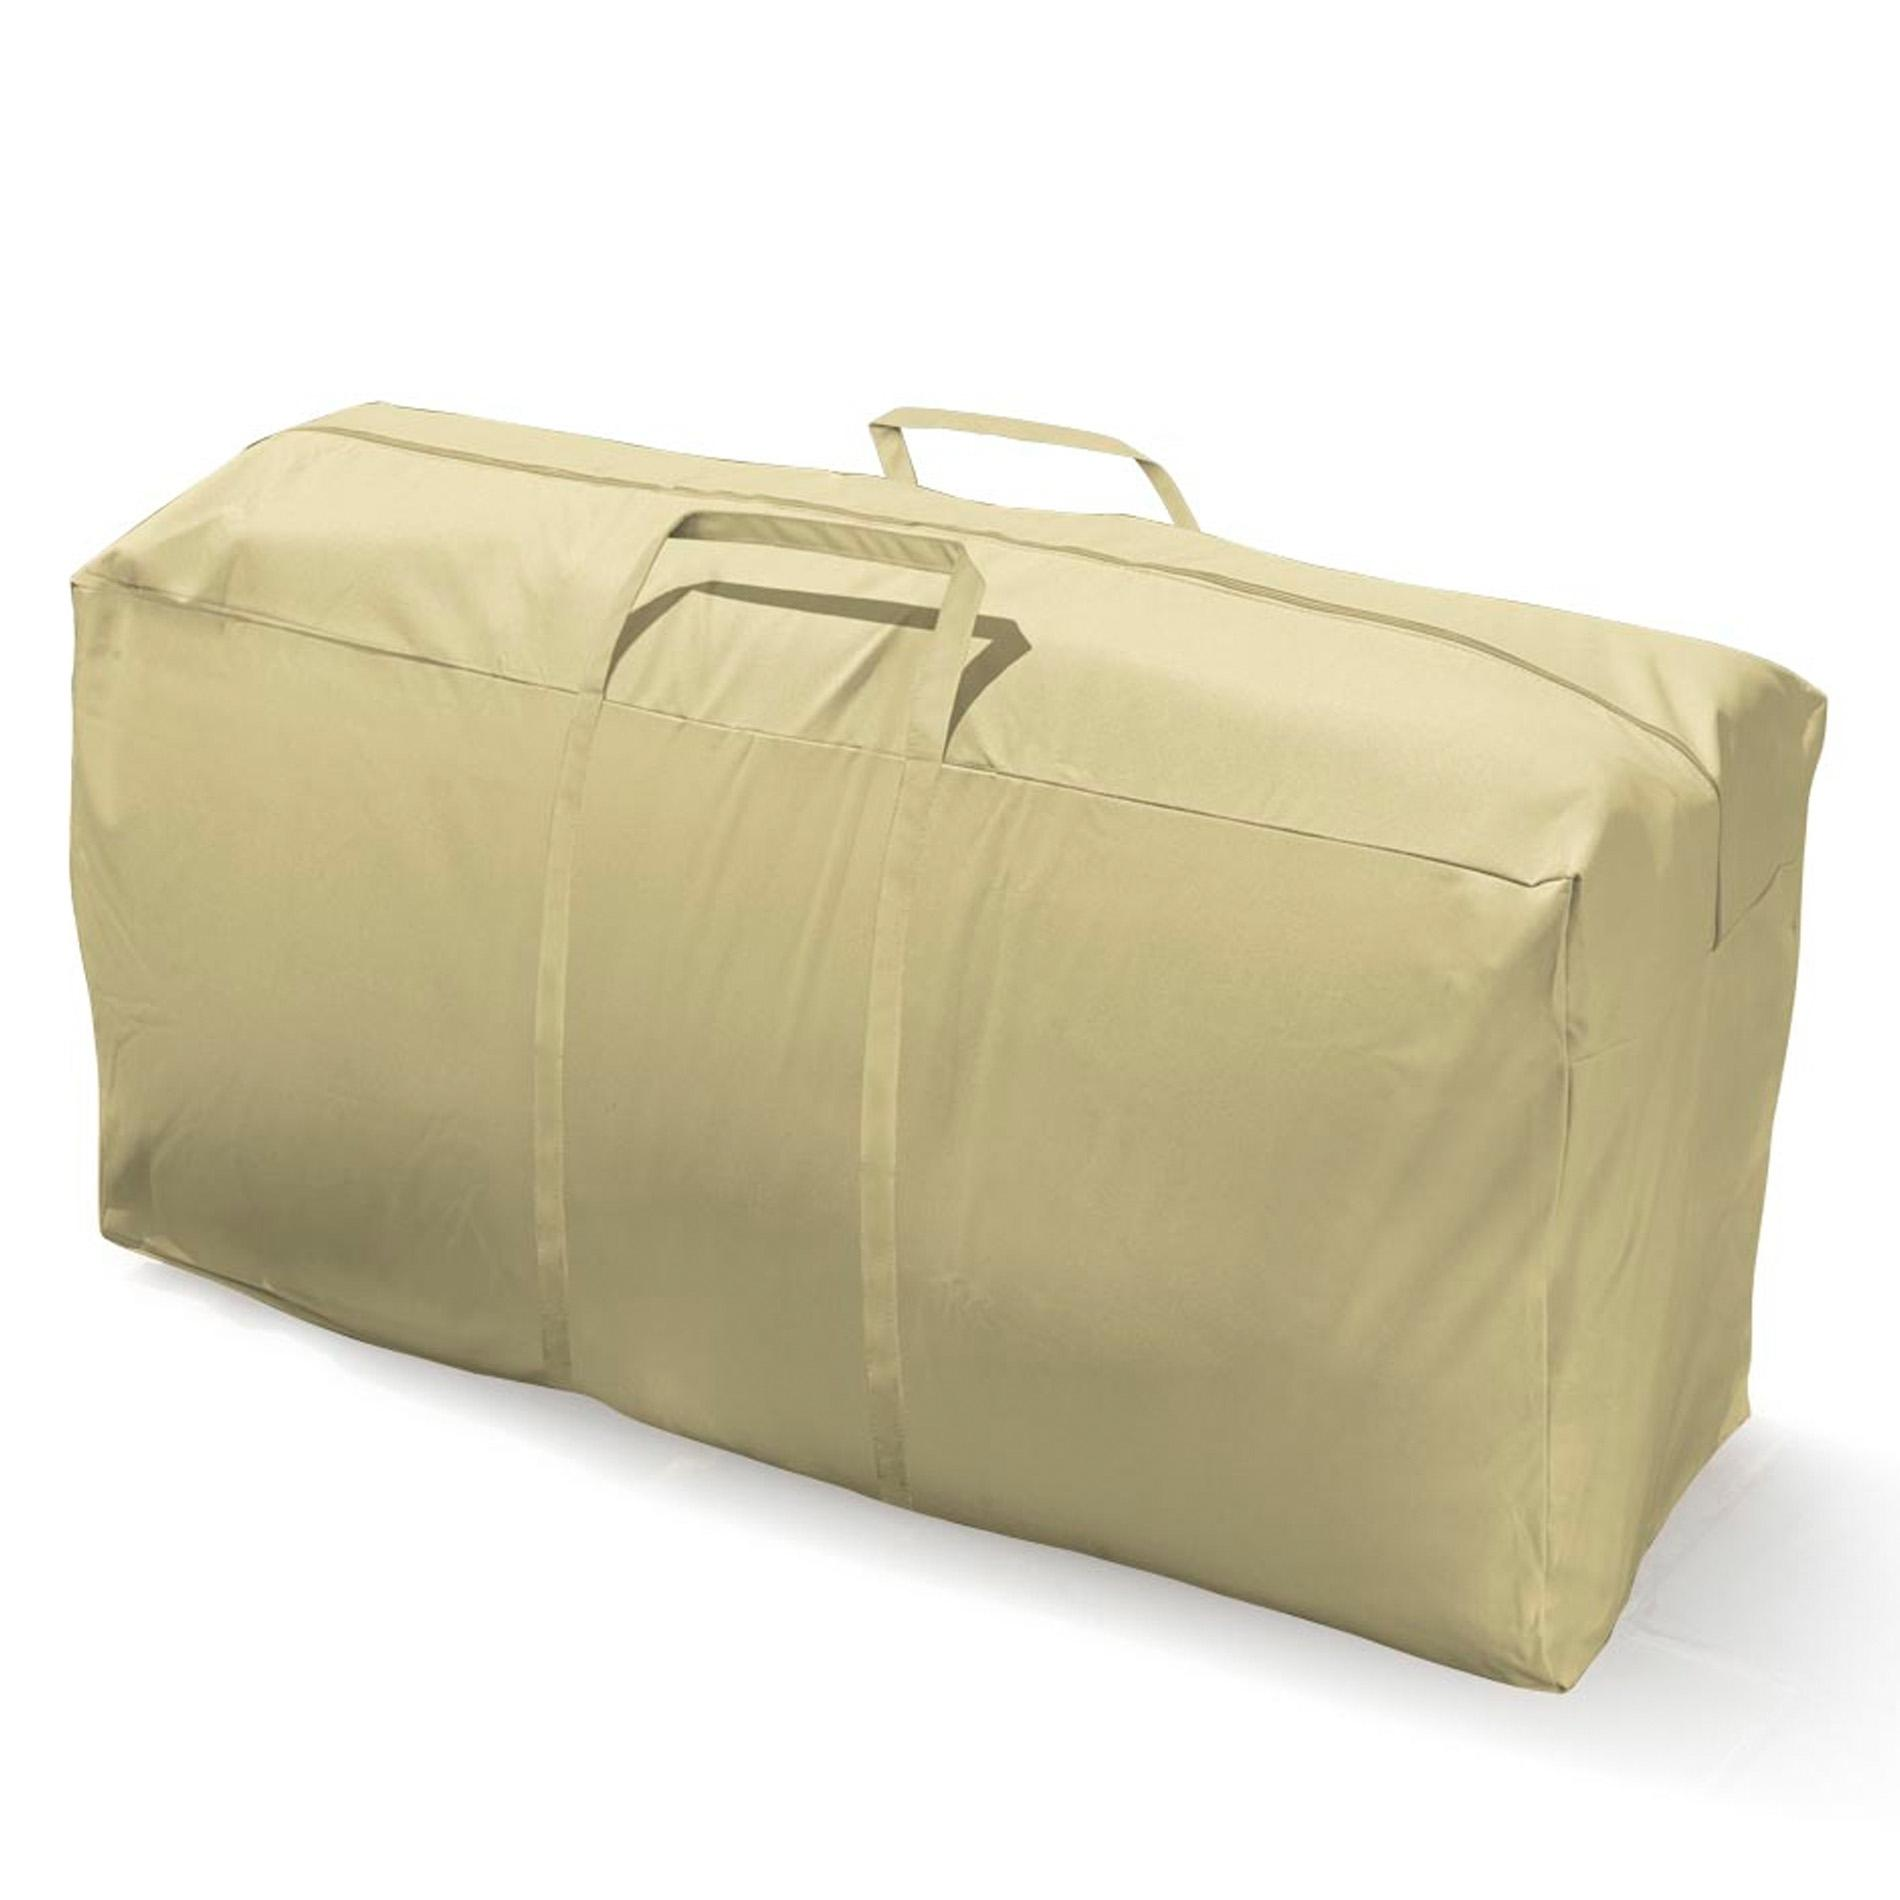 Mr Bbq Premium Patio Cushion Storage Bag Free Shipping